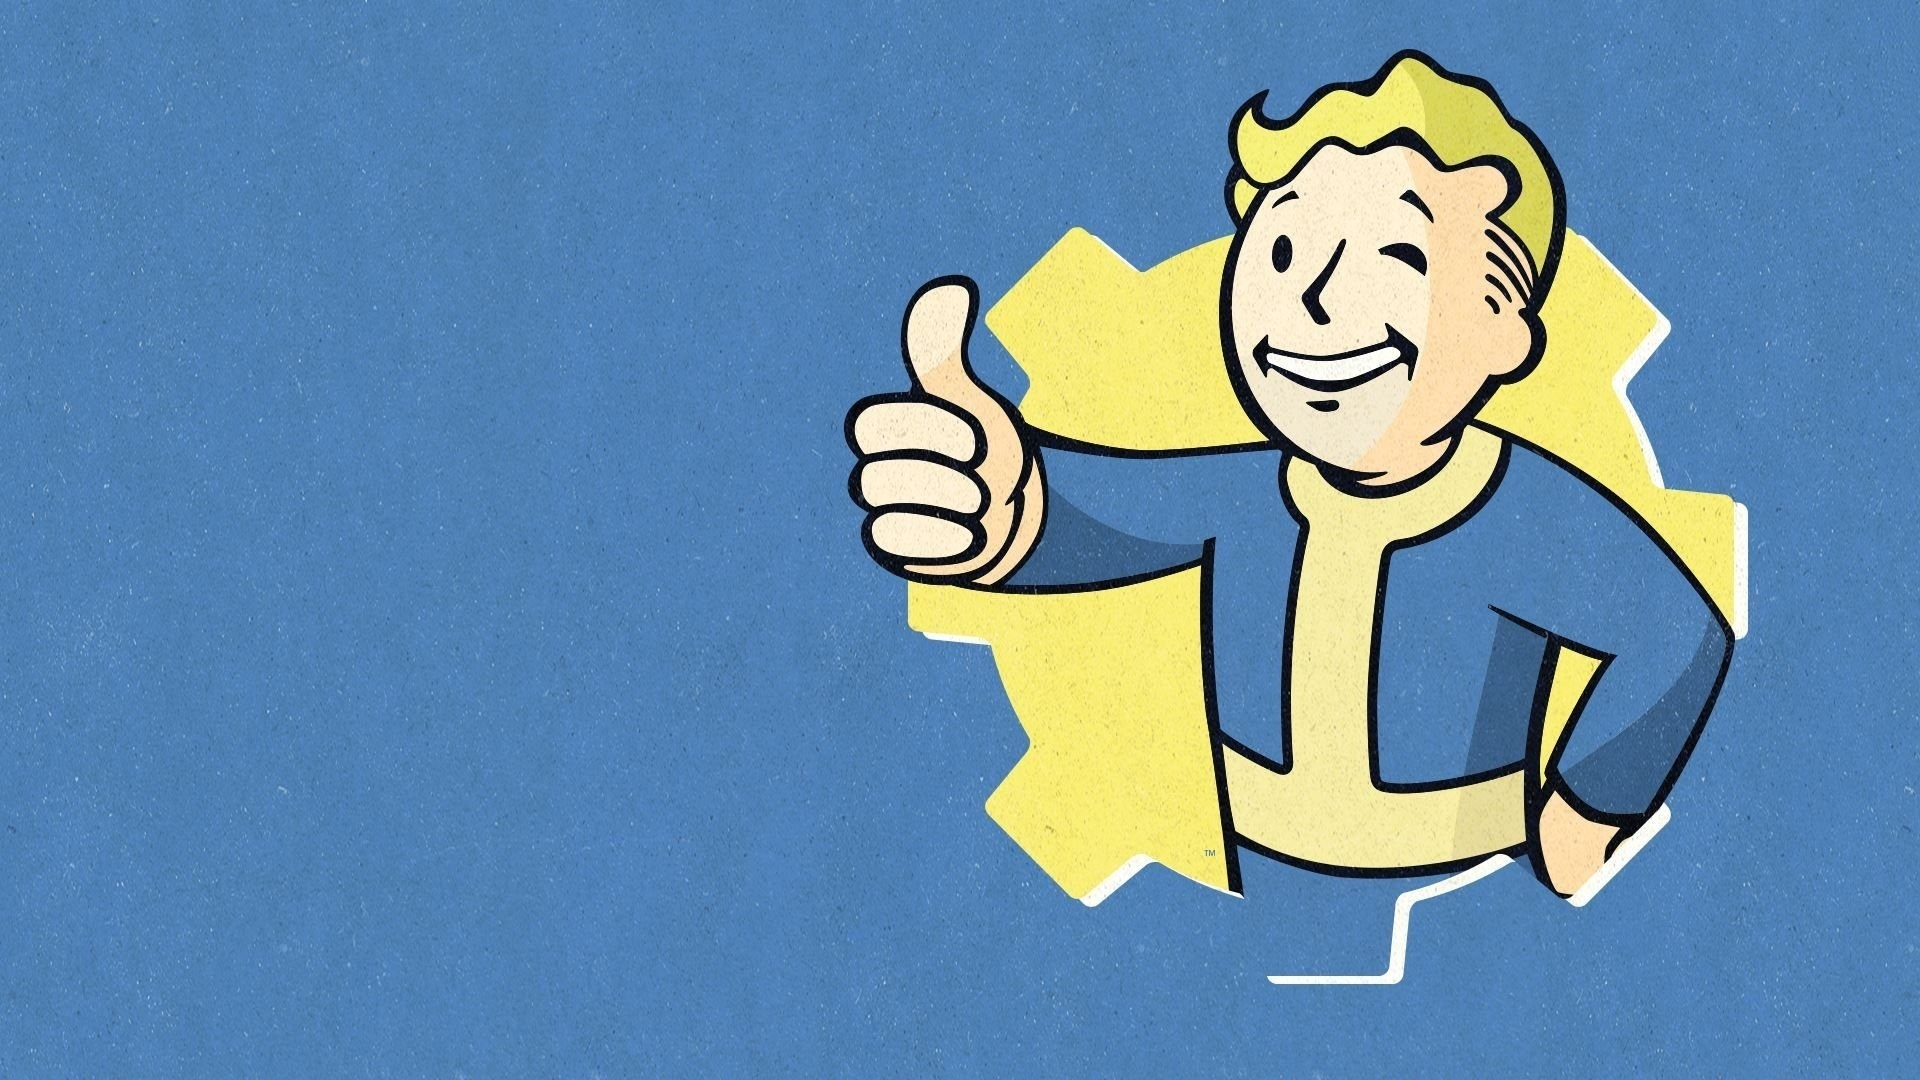 10 Most Popular Fallout Vault Boy Wallpaper Hd FULL HD 1080p For PC Background